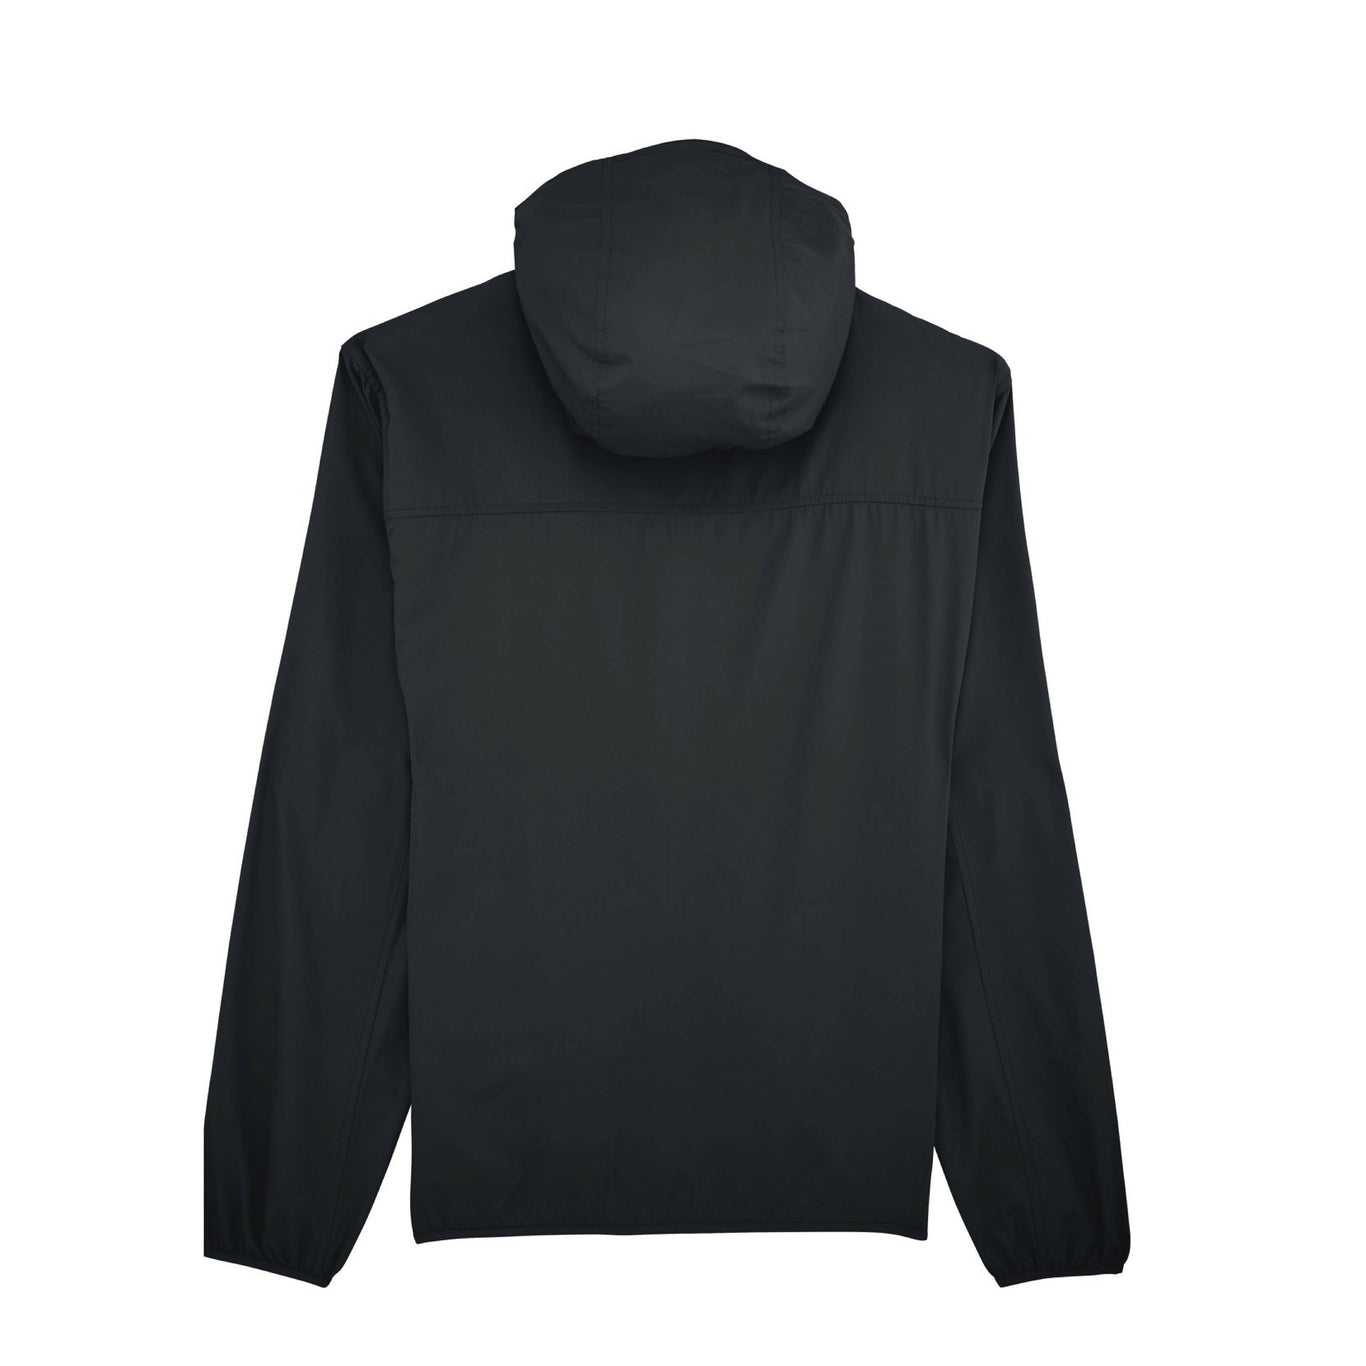 BACKTOBACK Black Recycled Windbreaker